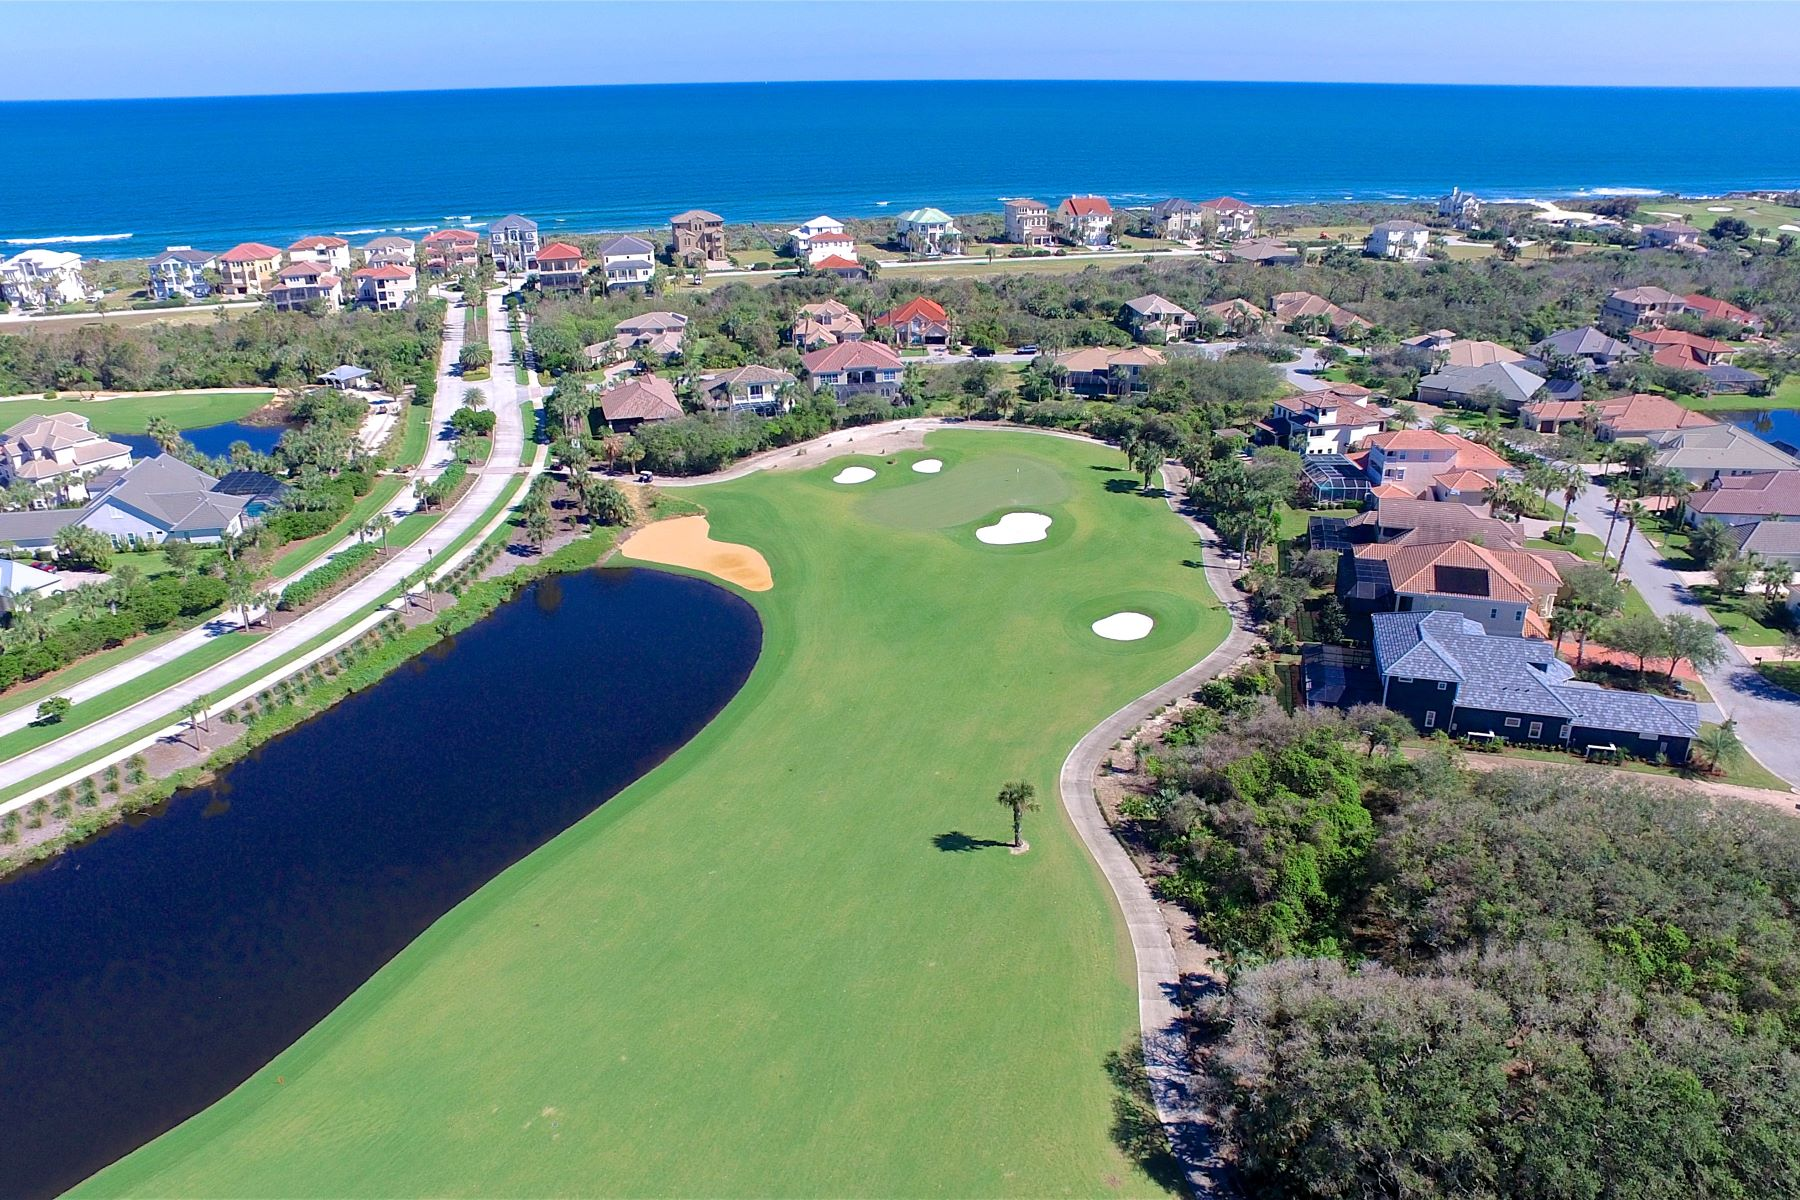 Additional photo for property listing at 11 Ocean Ridge Blvd S 11 Ocean Ridge Blvd S Palm Coast, Florida 32137 United States